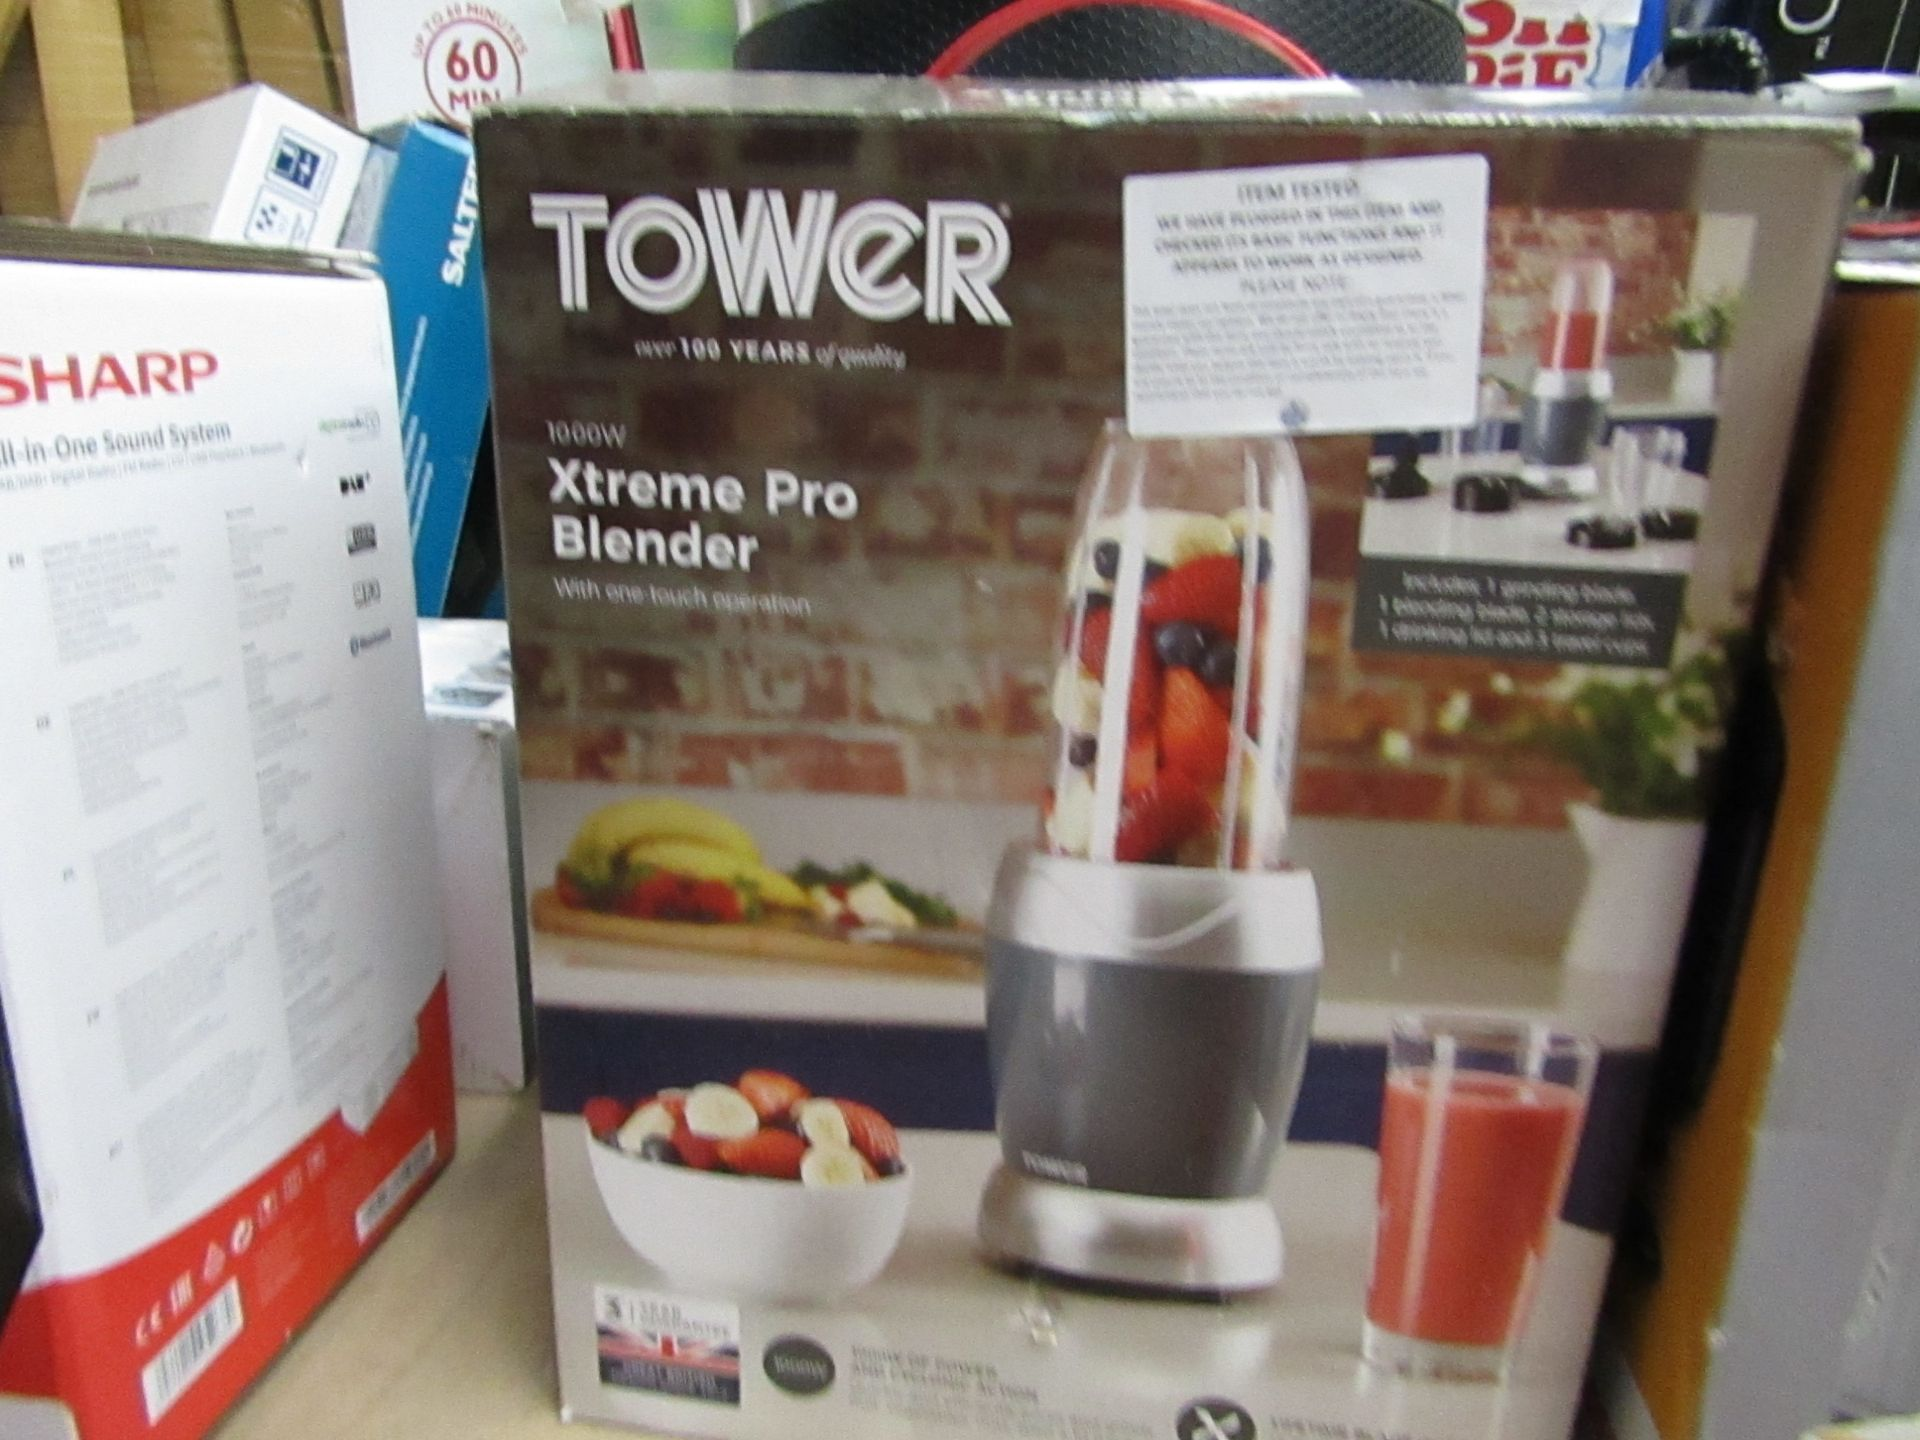 Lot 81 - Tower Xtreme Pro blender, tested working and boxed.